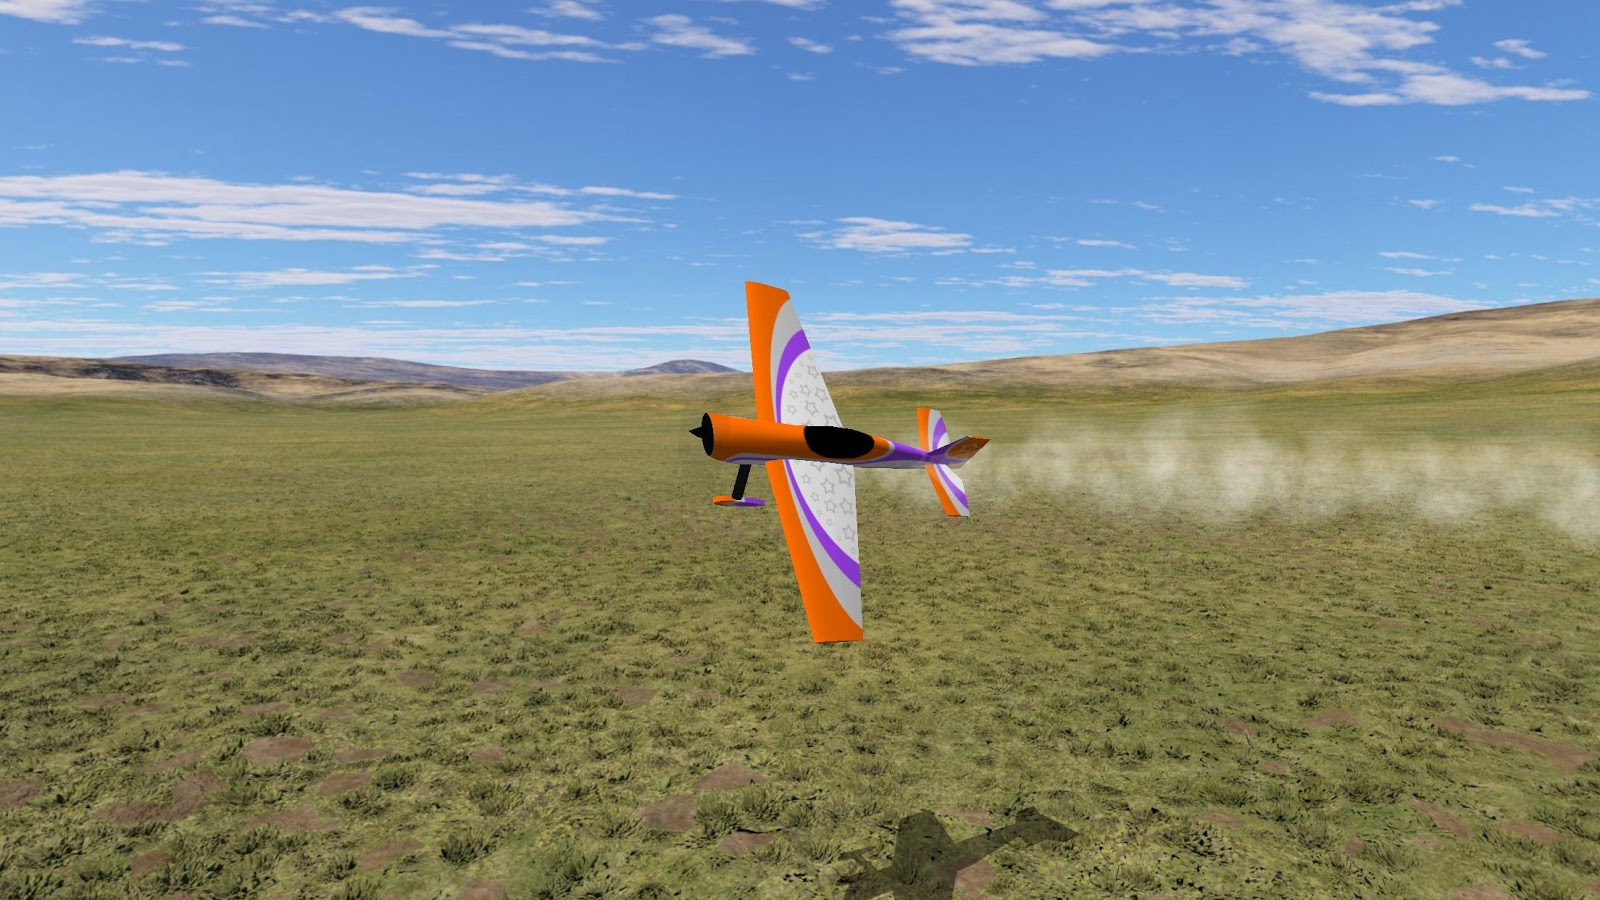 PicaSim: Flight simulator Screenshot 0